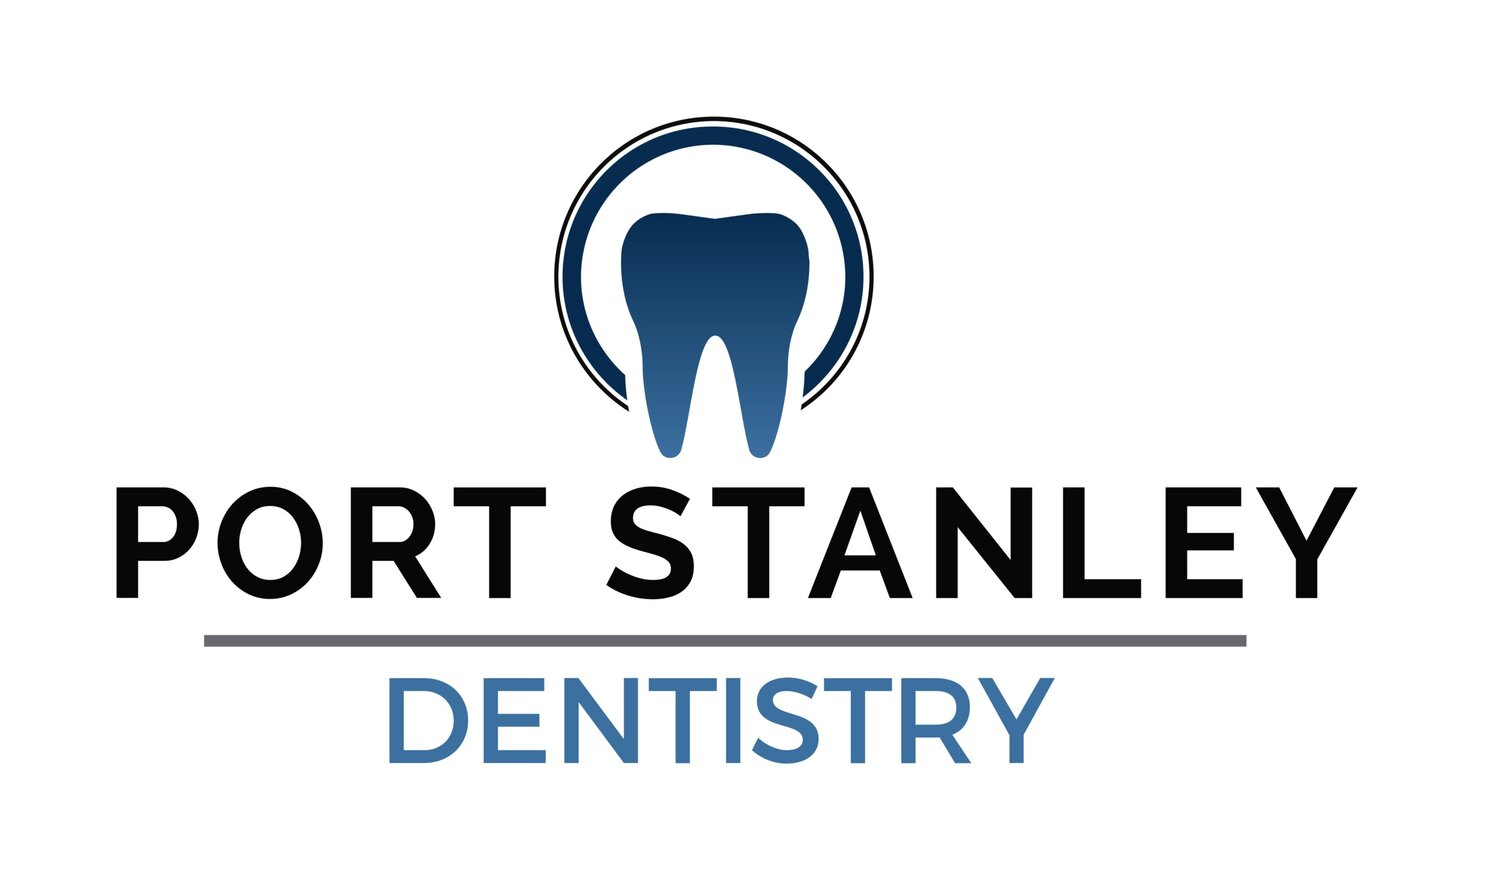 Port Stanley Dentistry